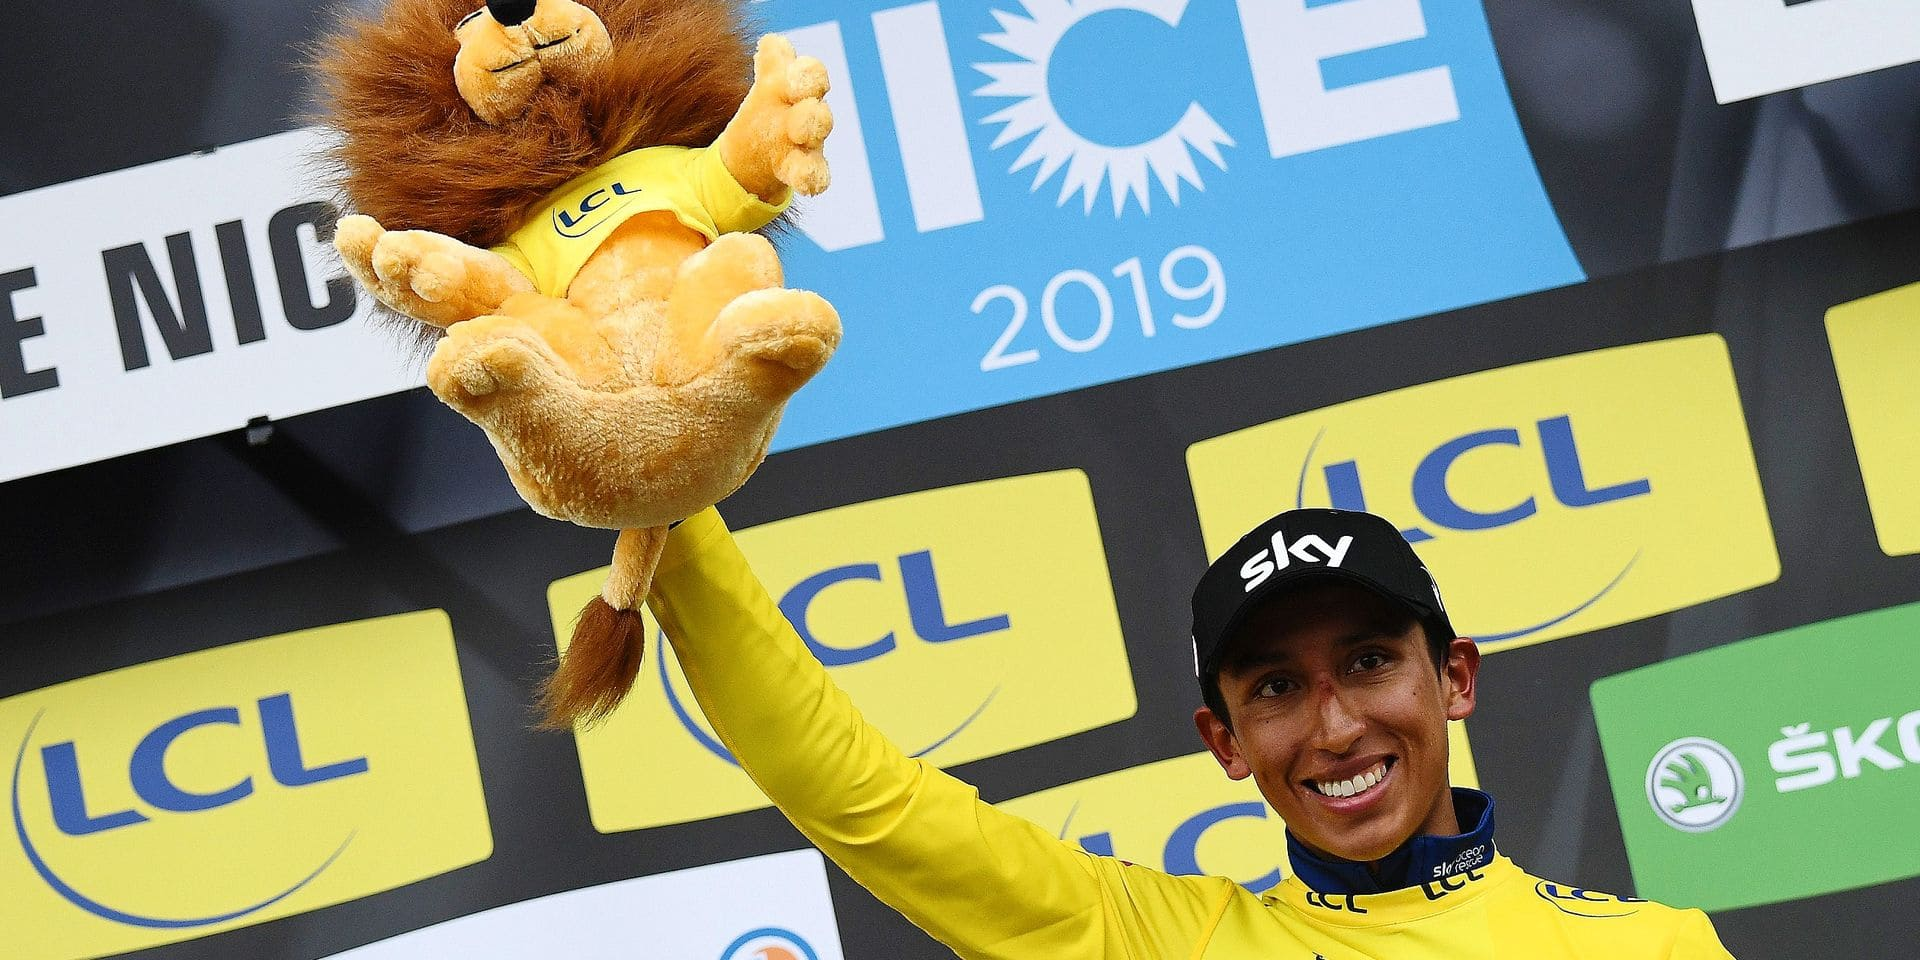 Colombia's Egan Bernal celebrates his overall leader yellow jersey on the podium at the end of the 110km 8th and last stage of the 77th Paris-Nice cycling race stage between Nice and Nice on March 17, 2019. (Photo by Anne-Christine POUJOULAT / AFP)